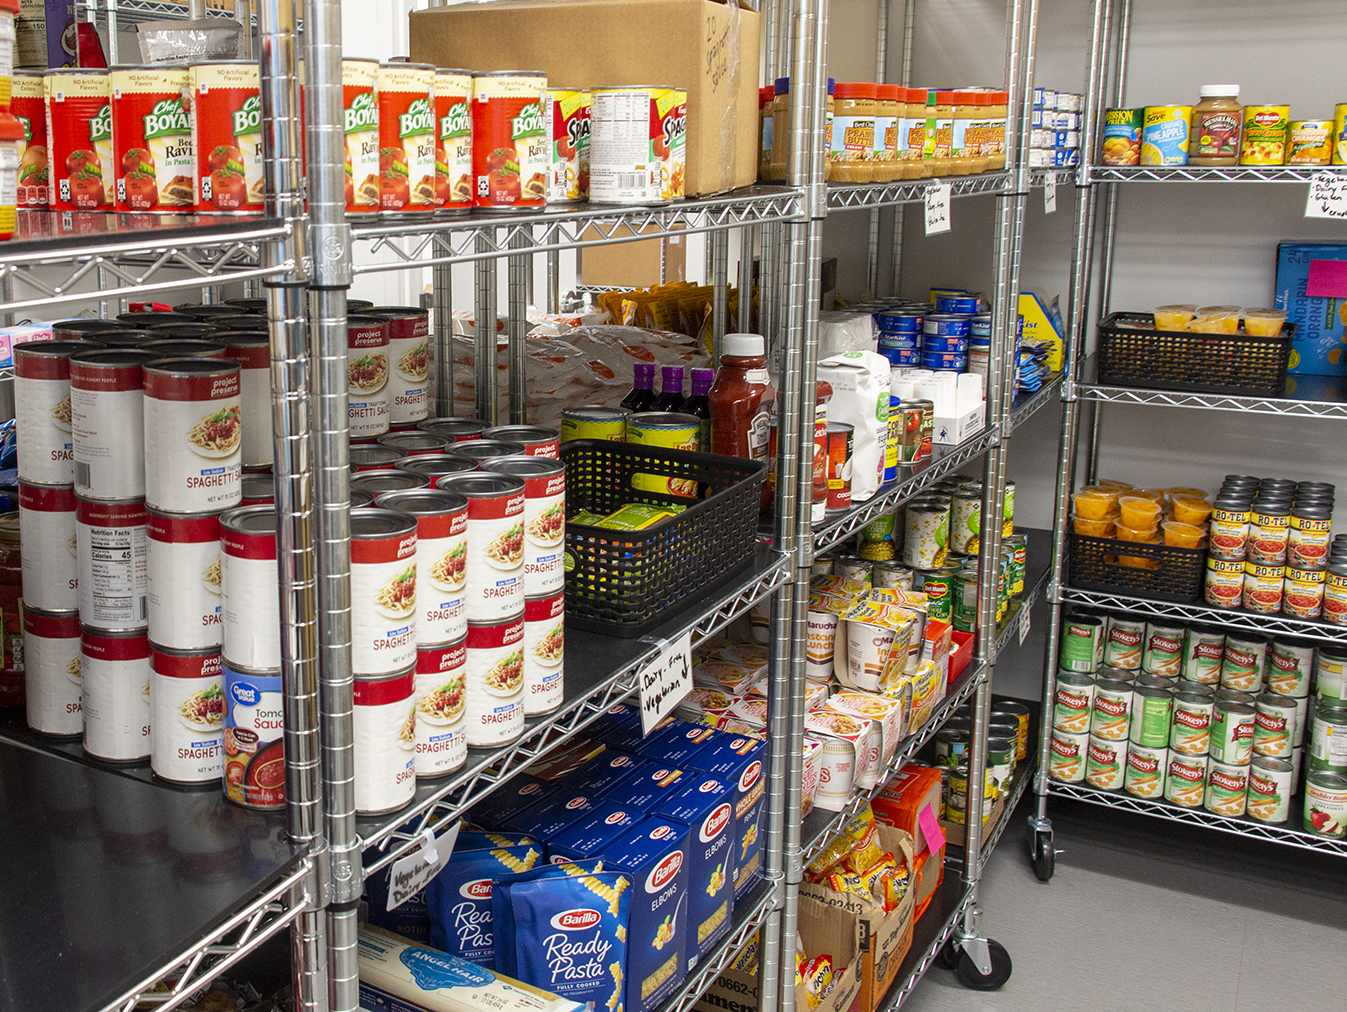 Husker Pantry relies on donations to keep it's shelves stocked and the weekly pick-up bags filled so students do not suffer from hunger. 100% of donations benefit UNL students.